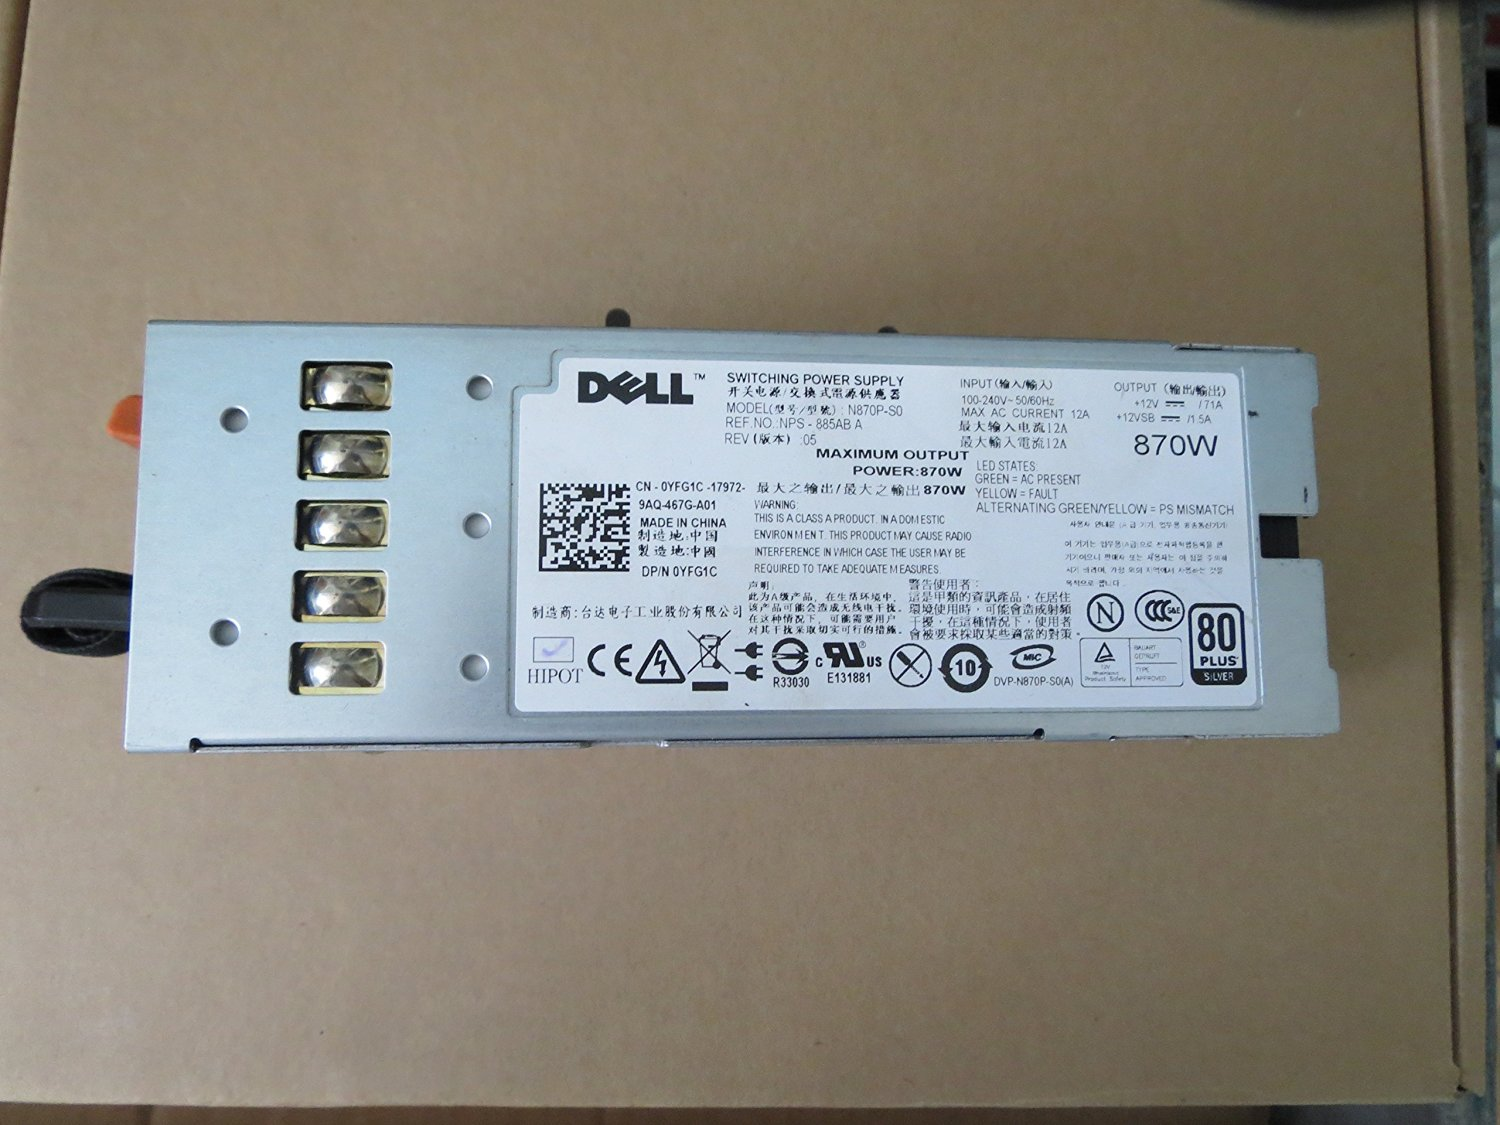 Cheap Power Supply Unit Dell, find Power Supply Unit Dell deals on